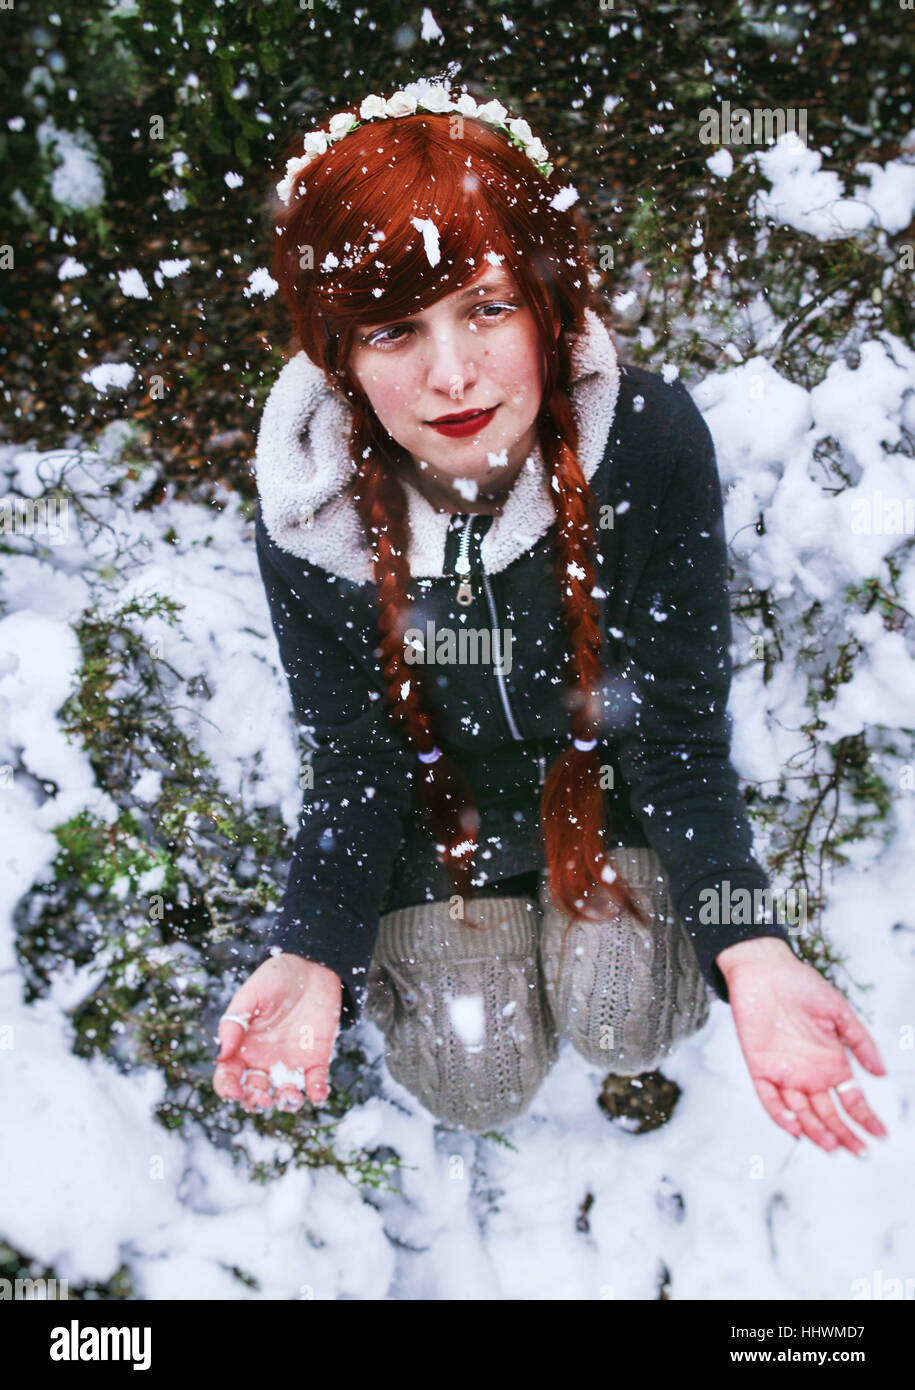 Young redhead woman at winter snowy day - Stock Image